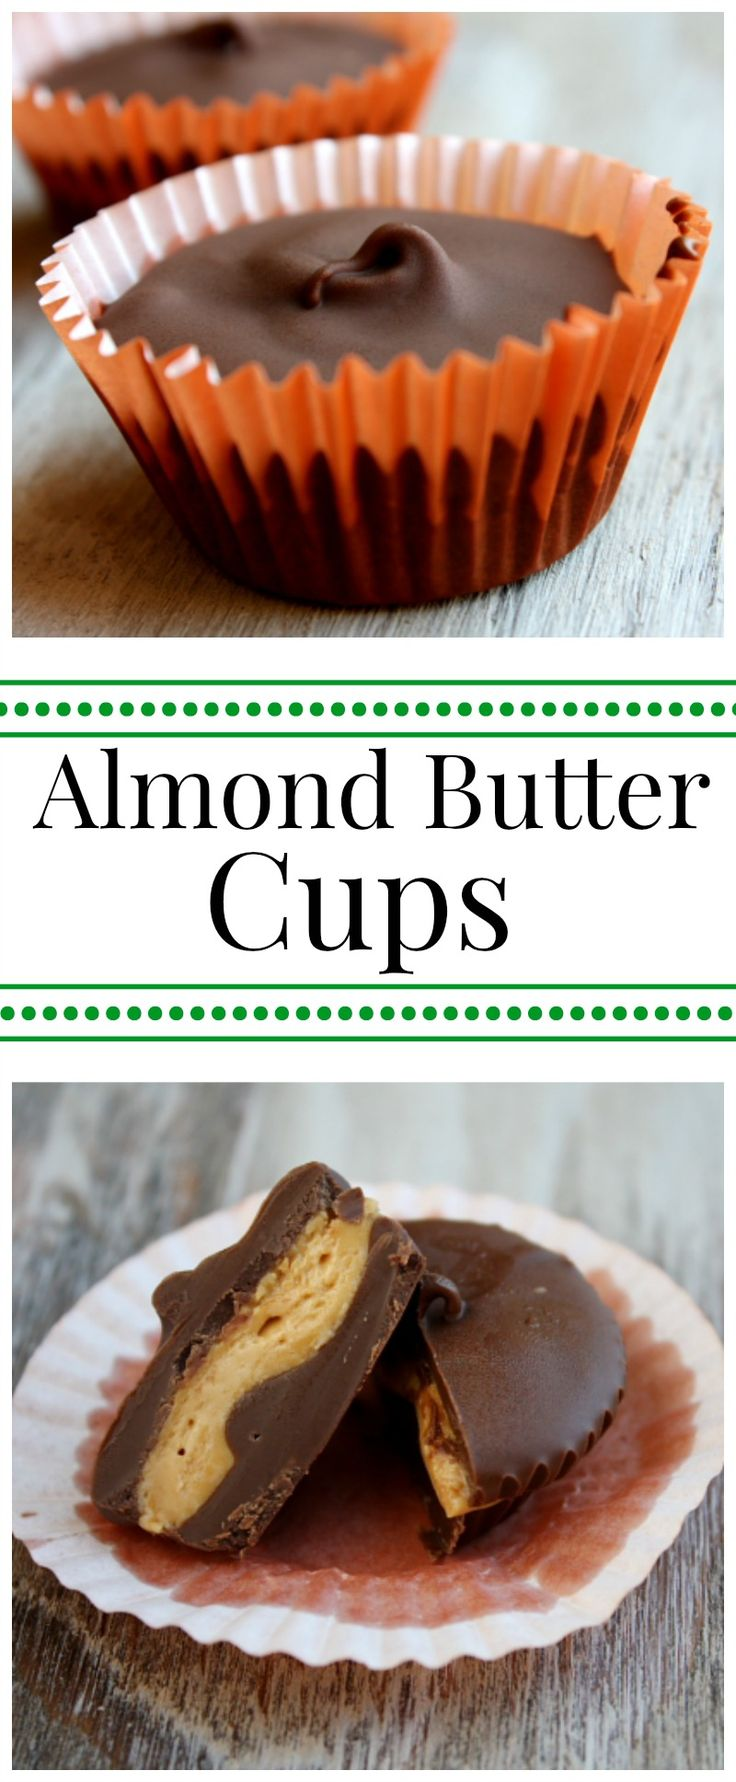 Homemade Almond Butter Cups.  Just like Reeses Peanut Butter Cups, but made with almond butter instead.  A delicious candy recipe!